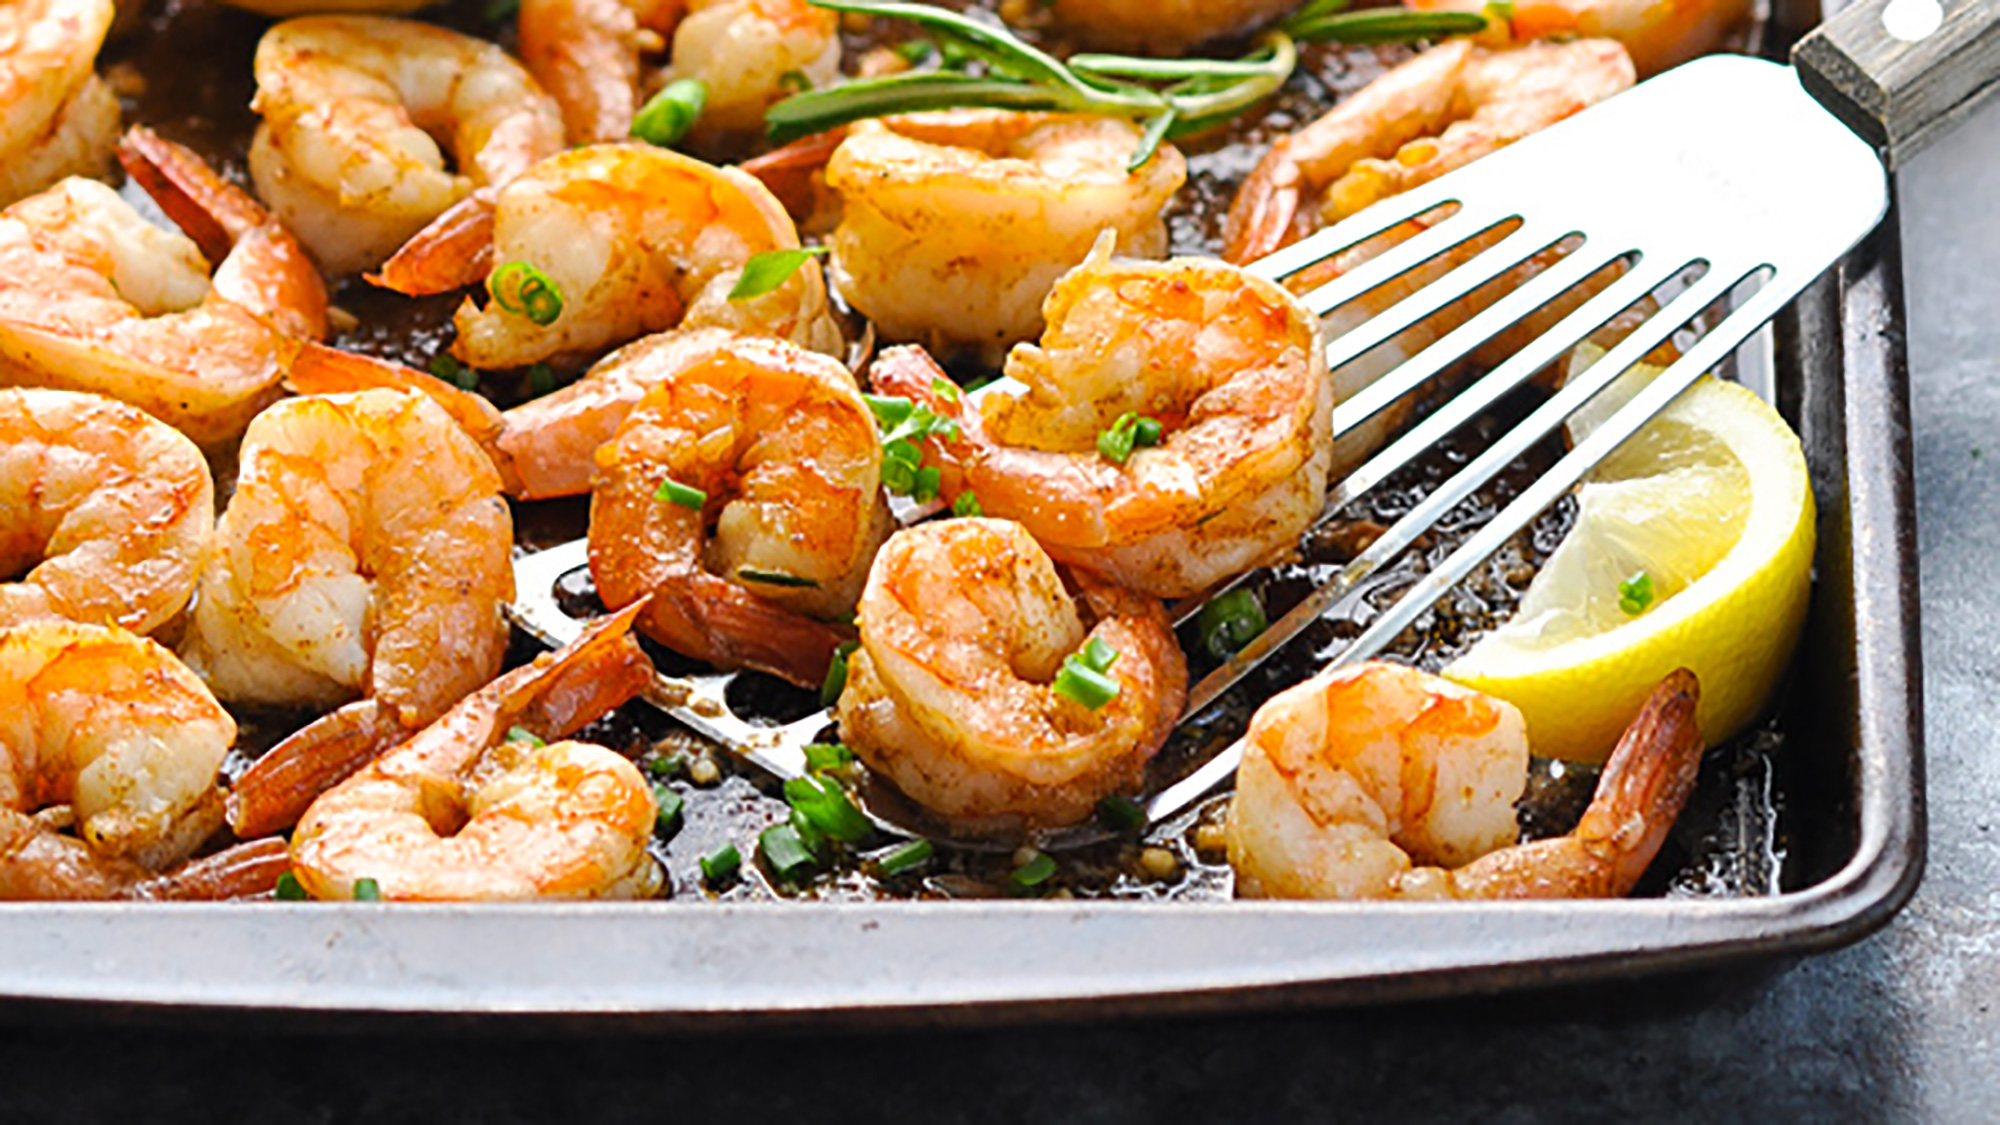 sheet_pan_new_orleans_barbecue_shrimp_2000x1125.jpg